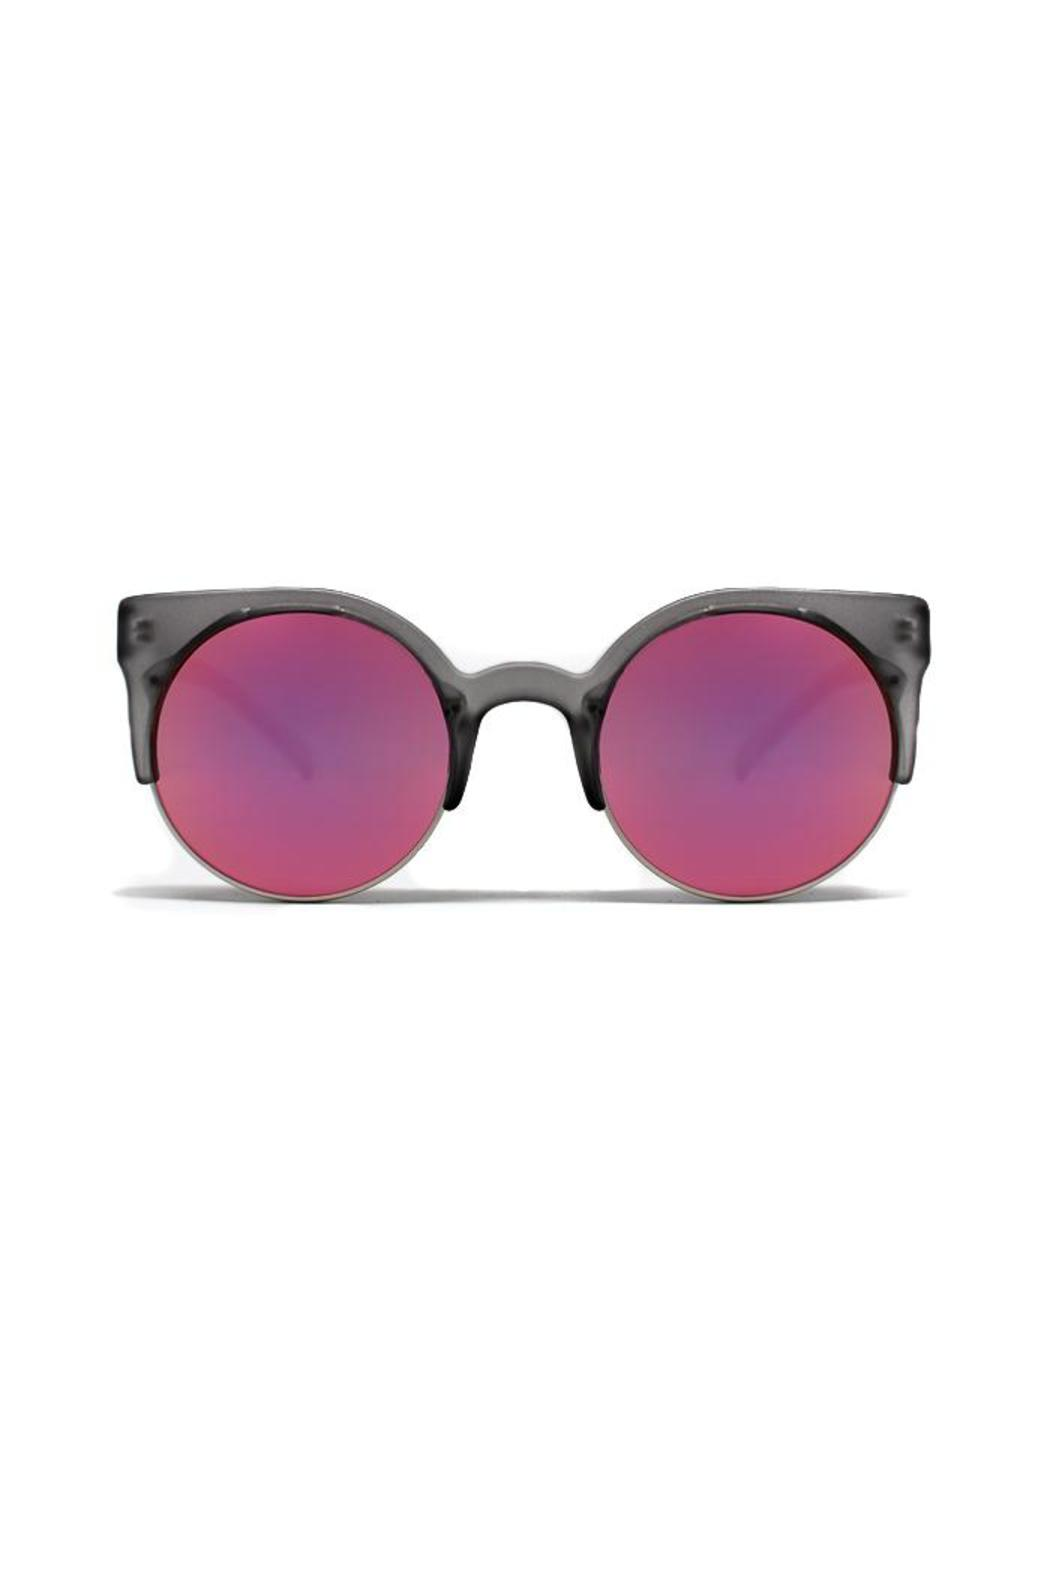 62ebac2dba Quay Australia Harlm Sunglasses from New Jersey by Pretty Edgy ...